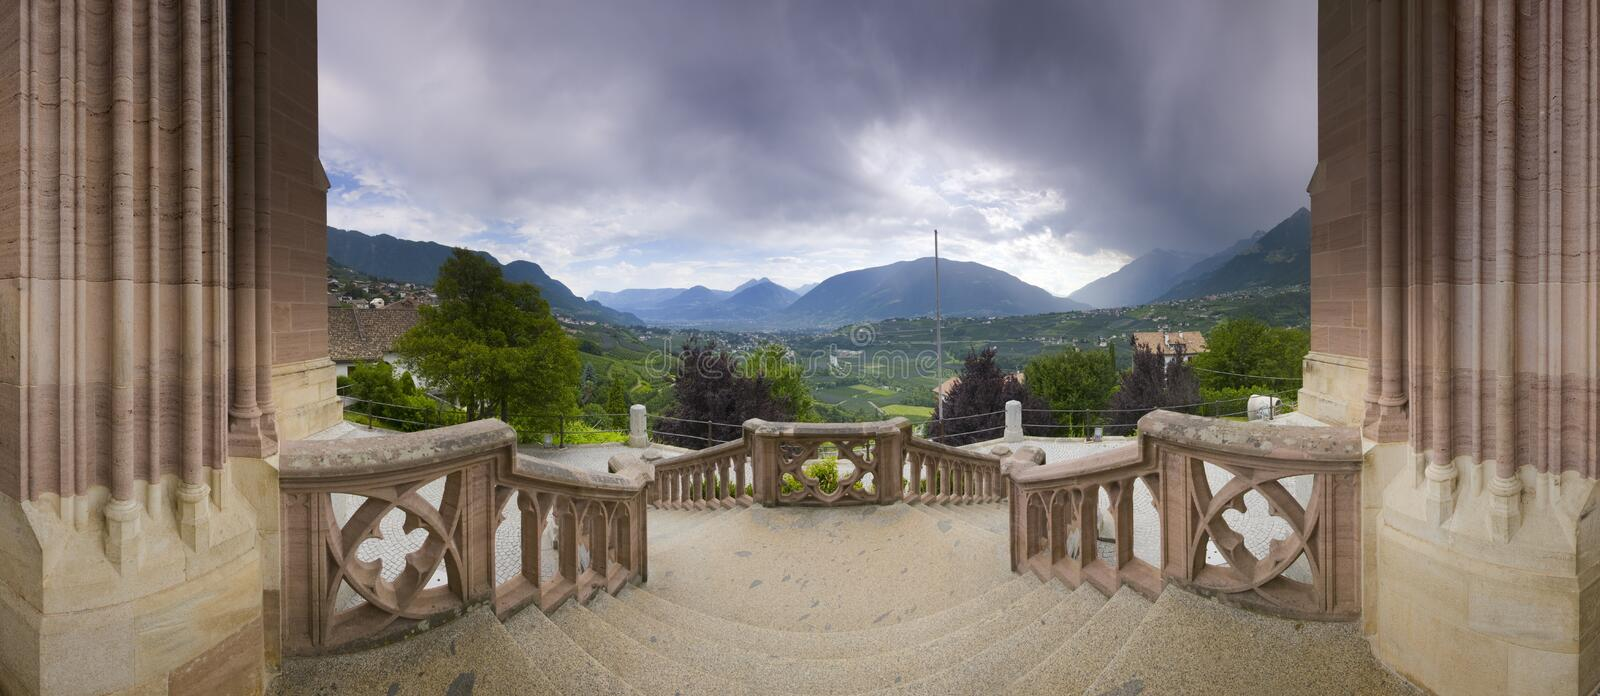 Panorama view from mausoleum scenna royalty free stock photography